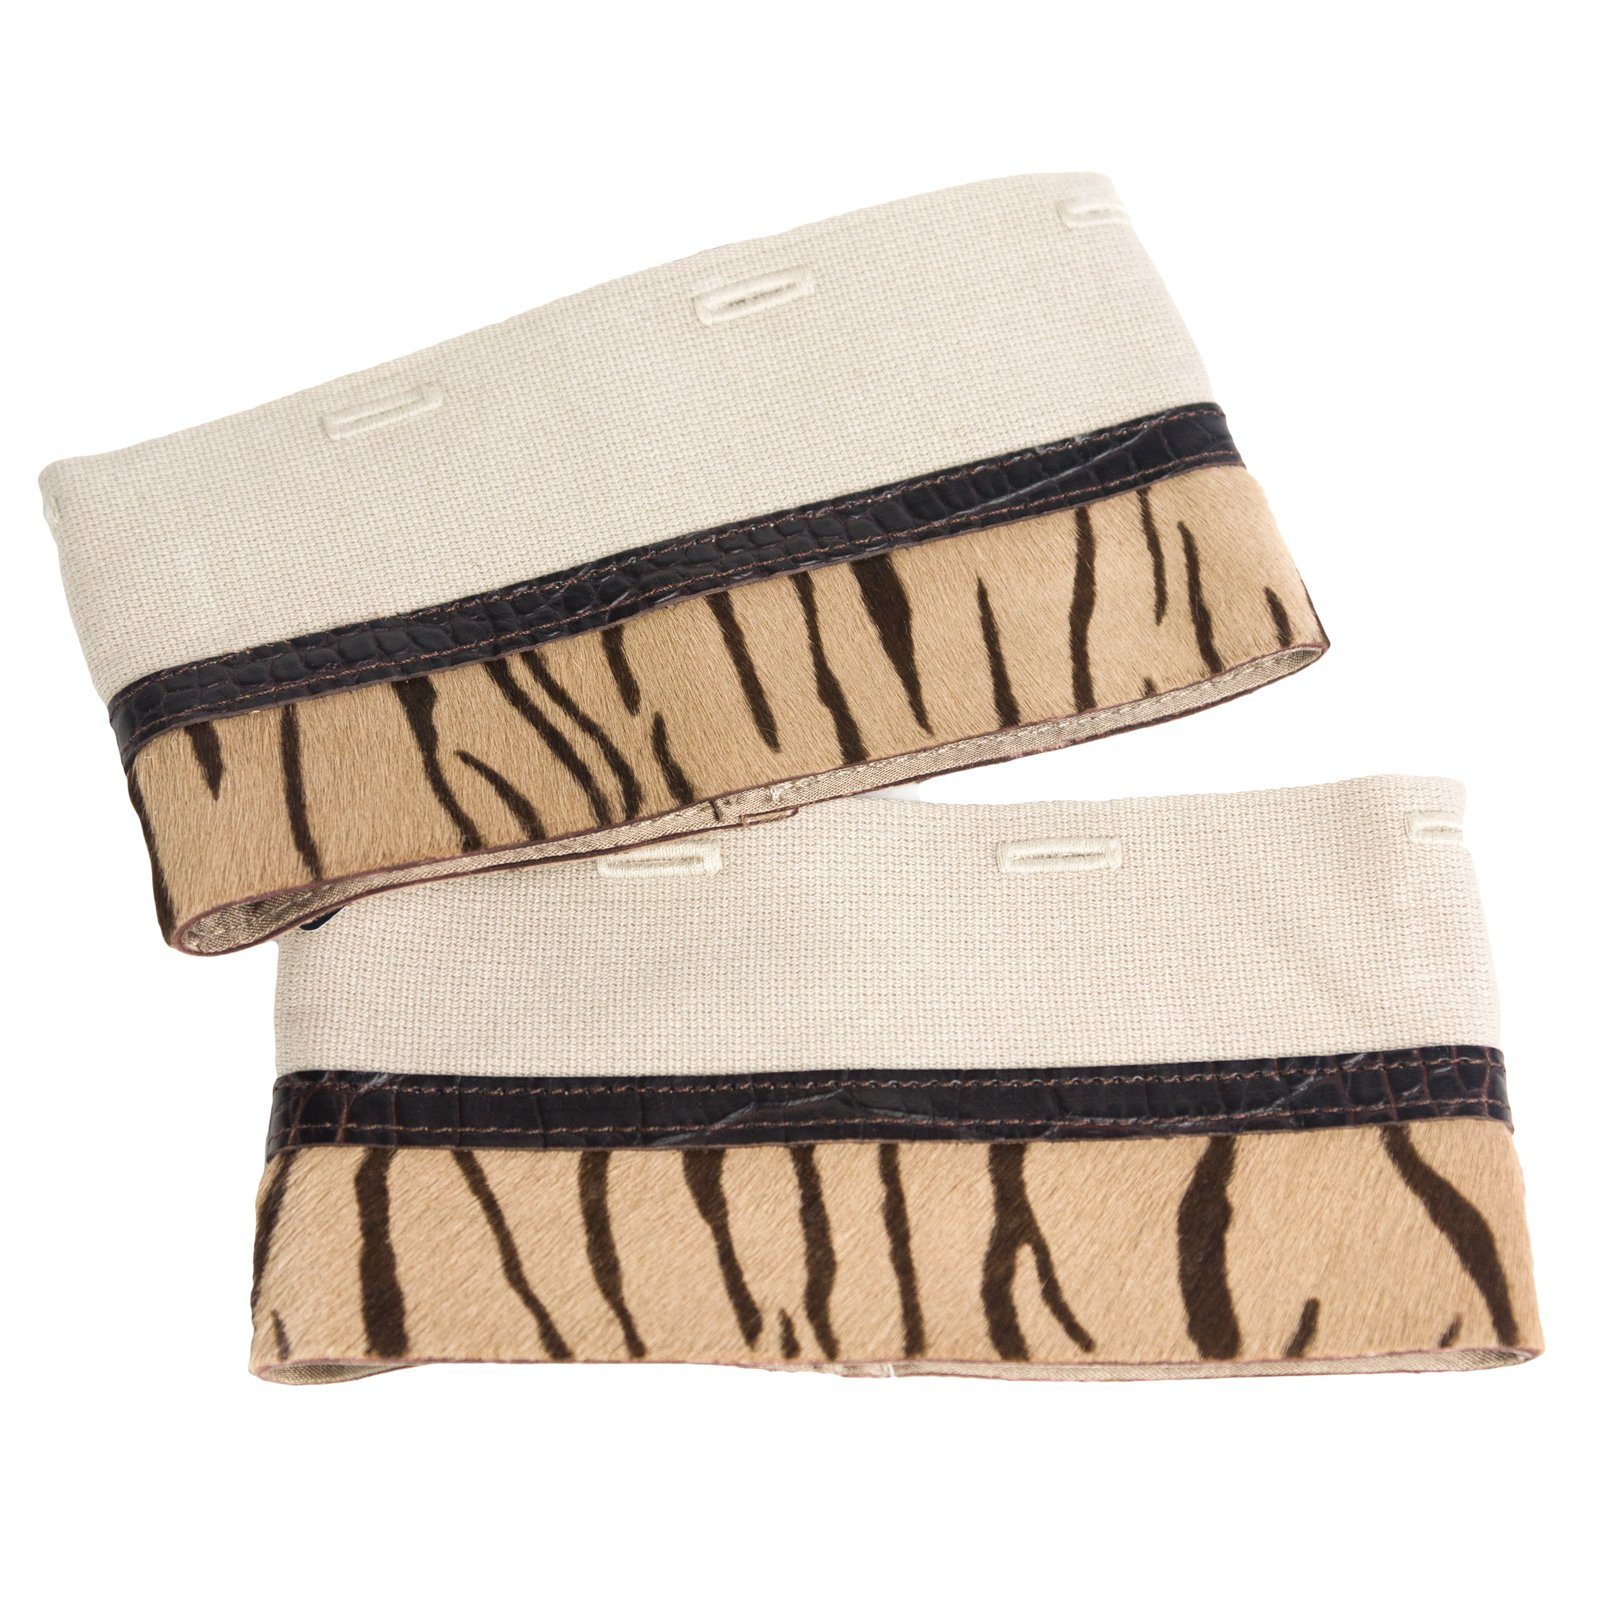 'S Max Mara Women's Benny Tiger Print Cube Collection Cuffs One Size Camel